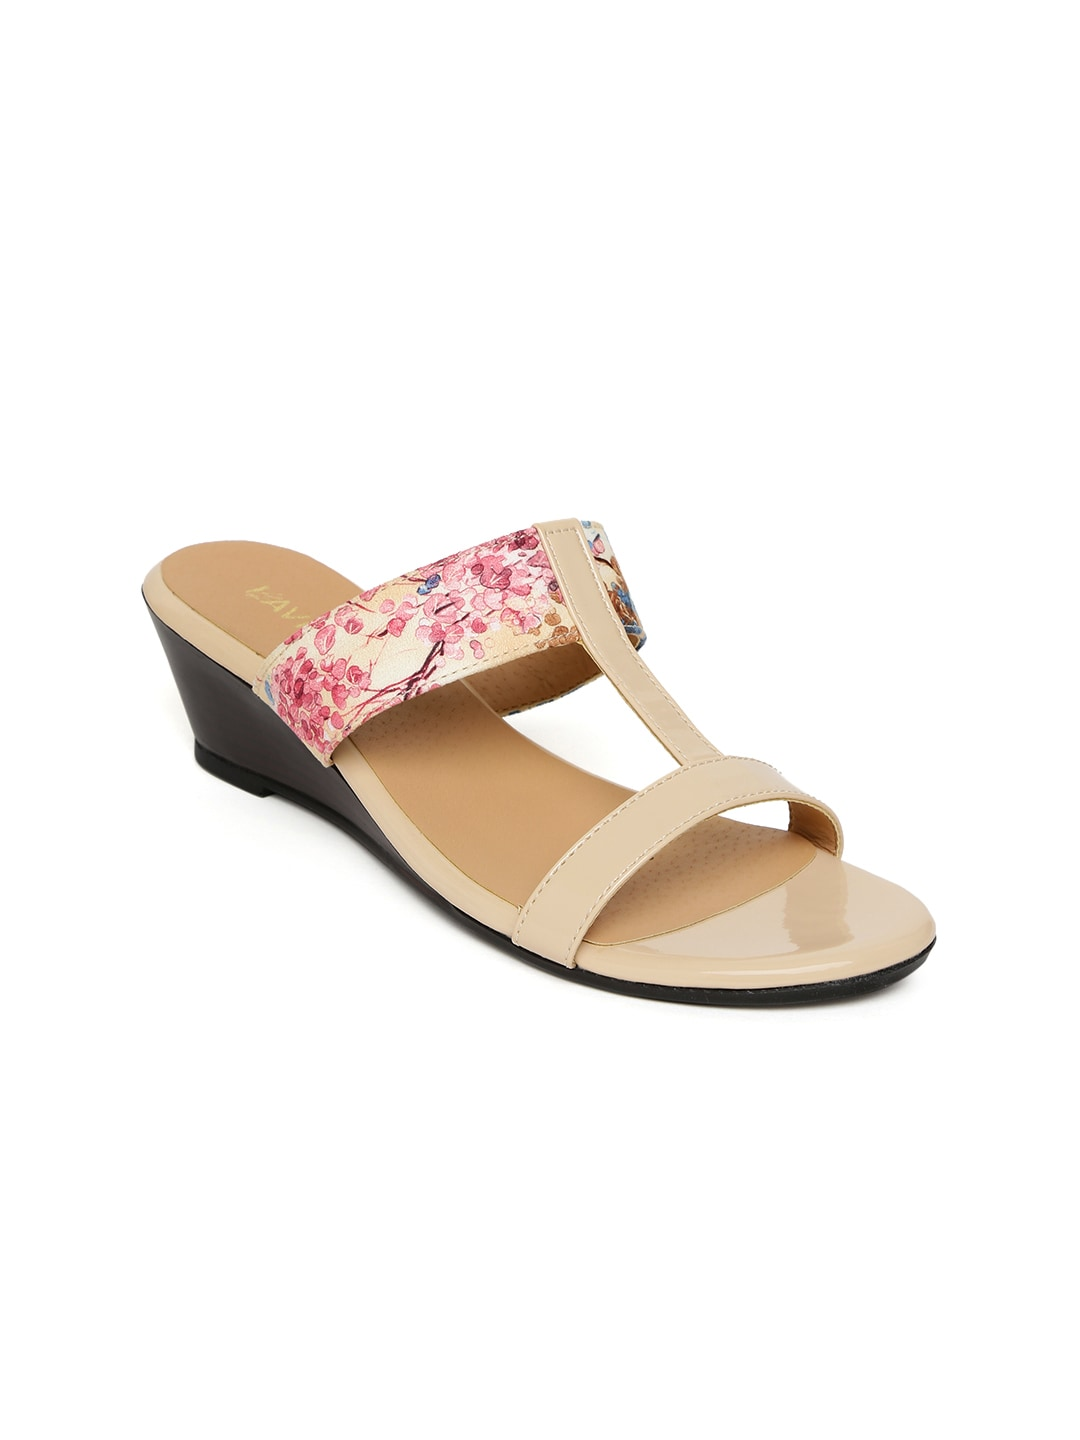 2f2b1885f59 Beige Shoes - Buy Beige Shoes Online in India